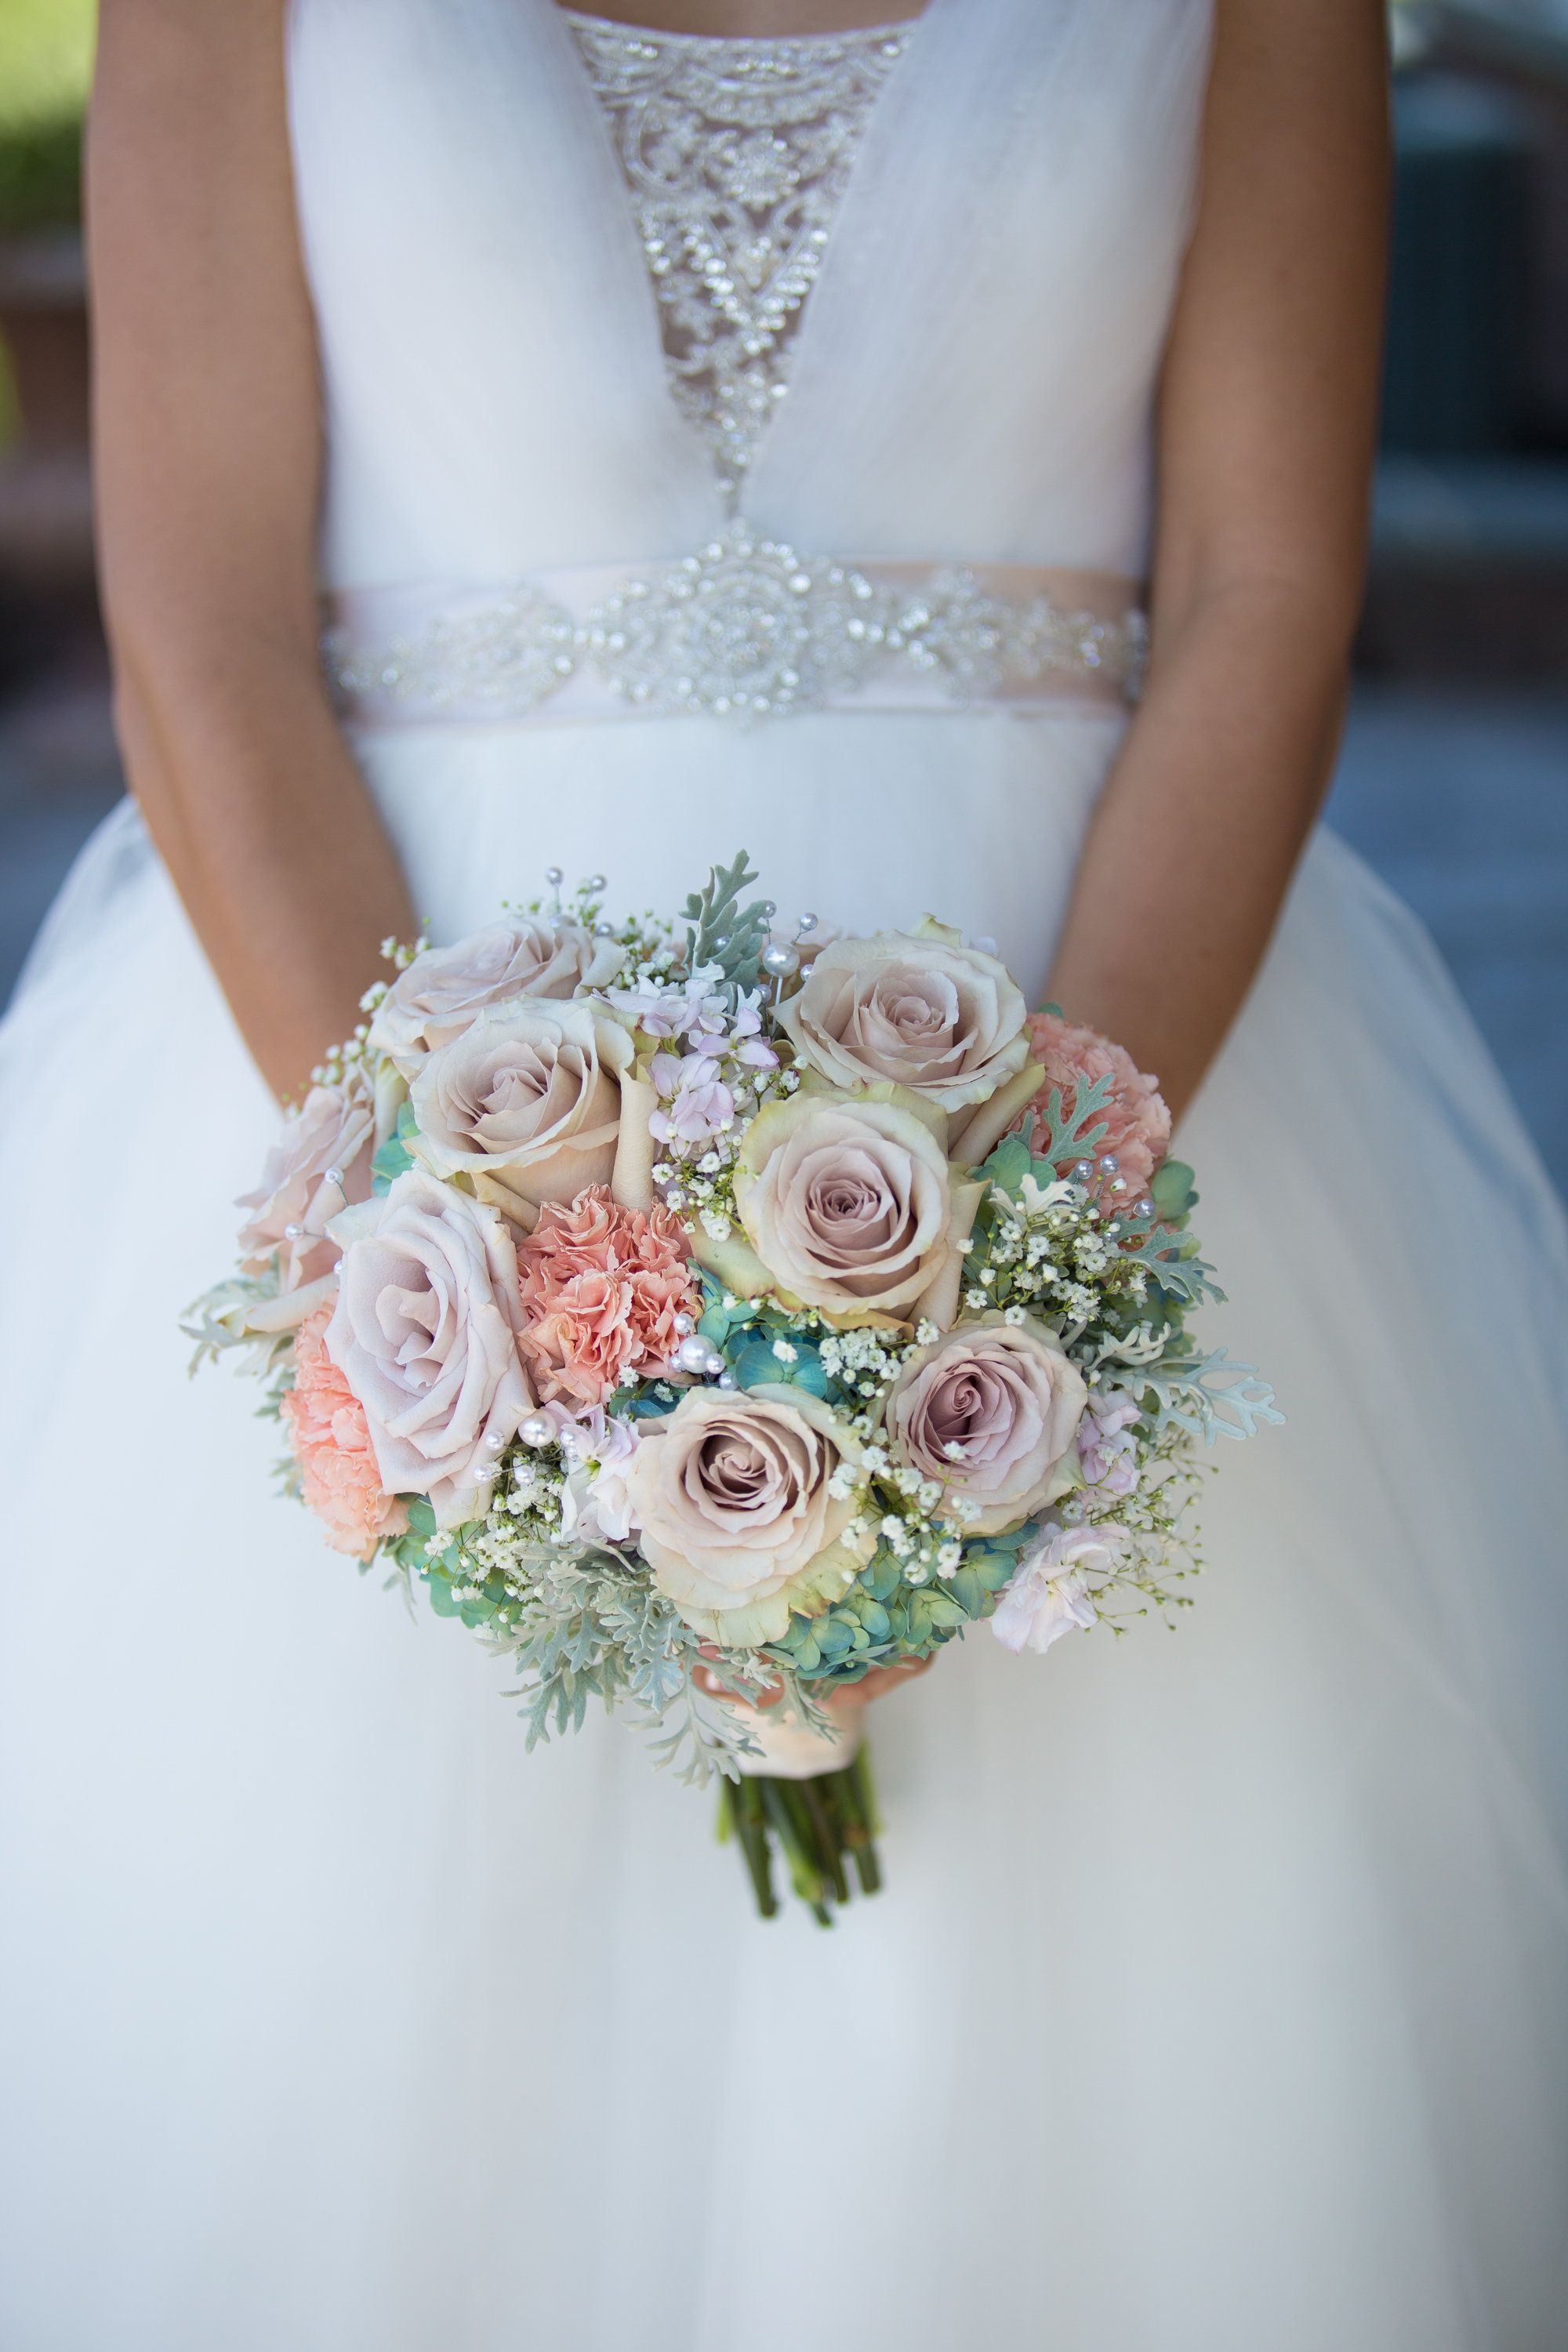 Hydrangea Quicksand Roses Peach Carnations Dusty Miller And